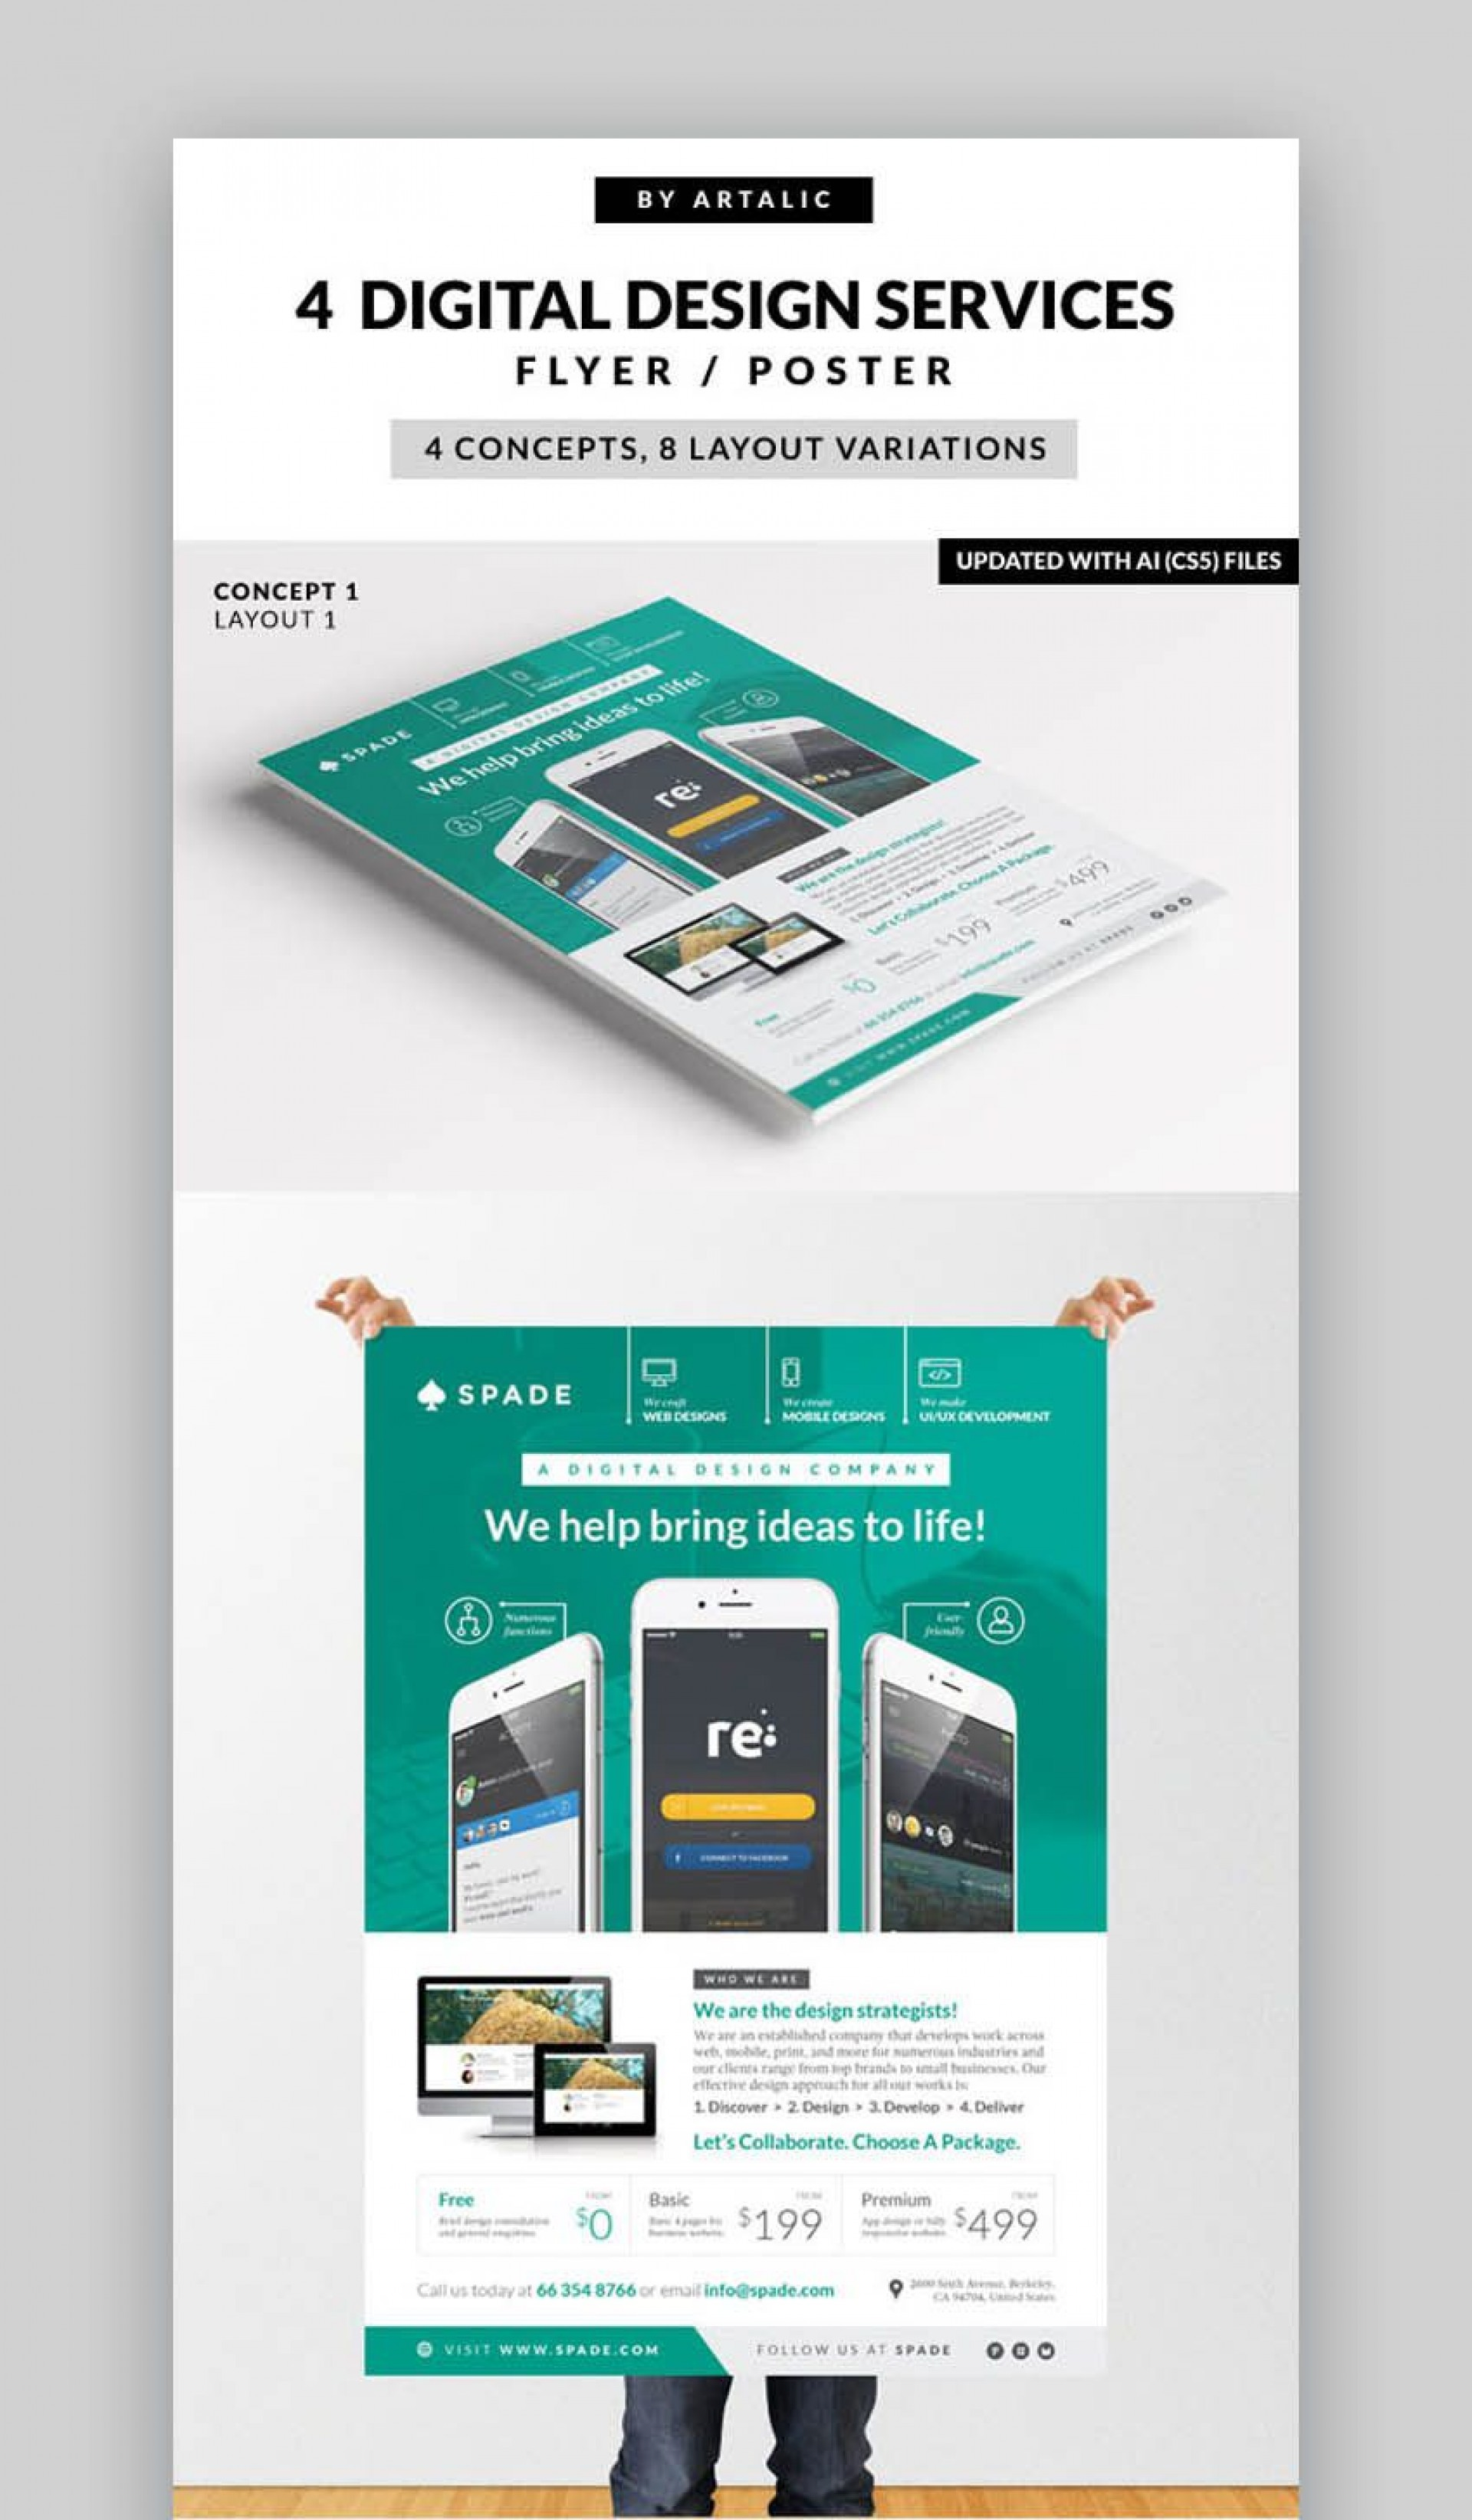 007 Magnificent In Design Flyer Template Highest Clarity  Templates Indesign Free For Mac Event1920